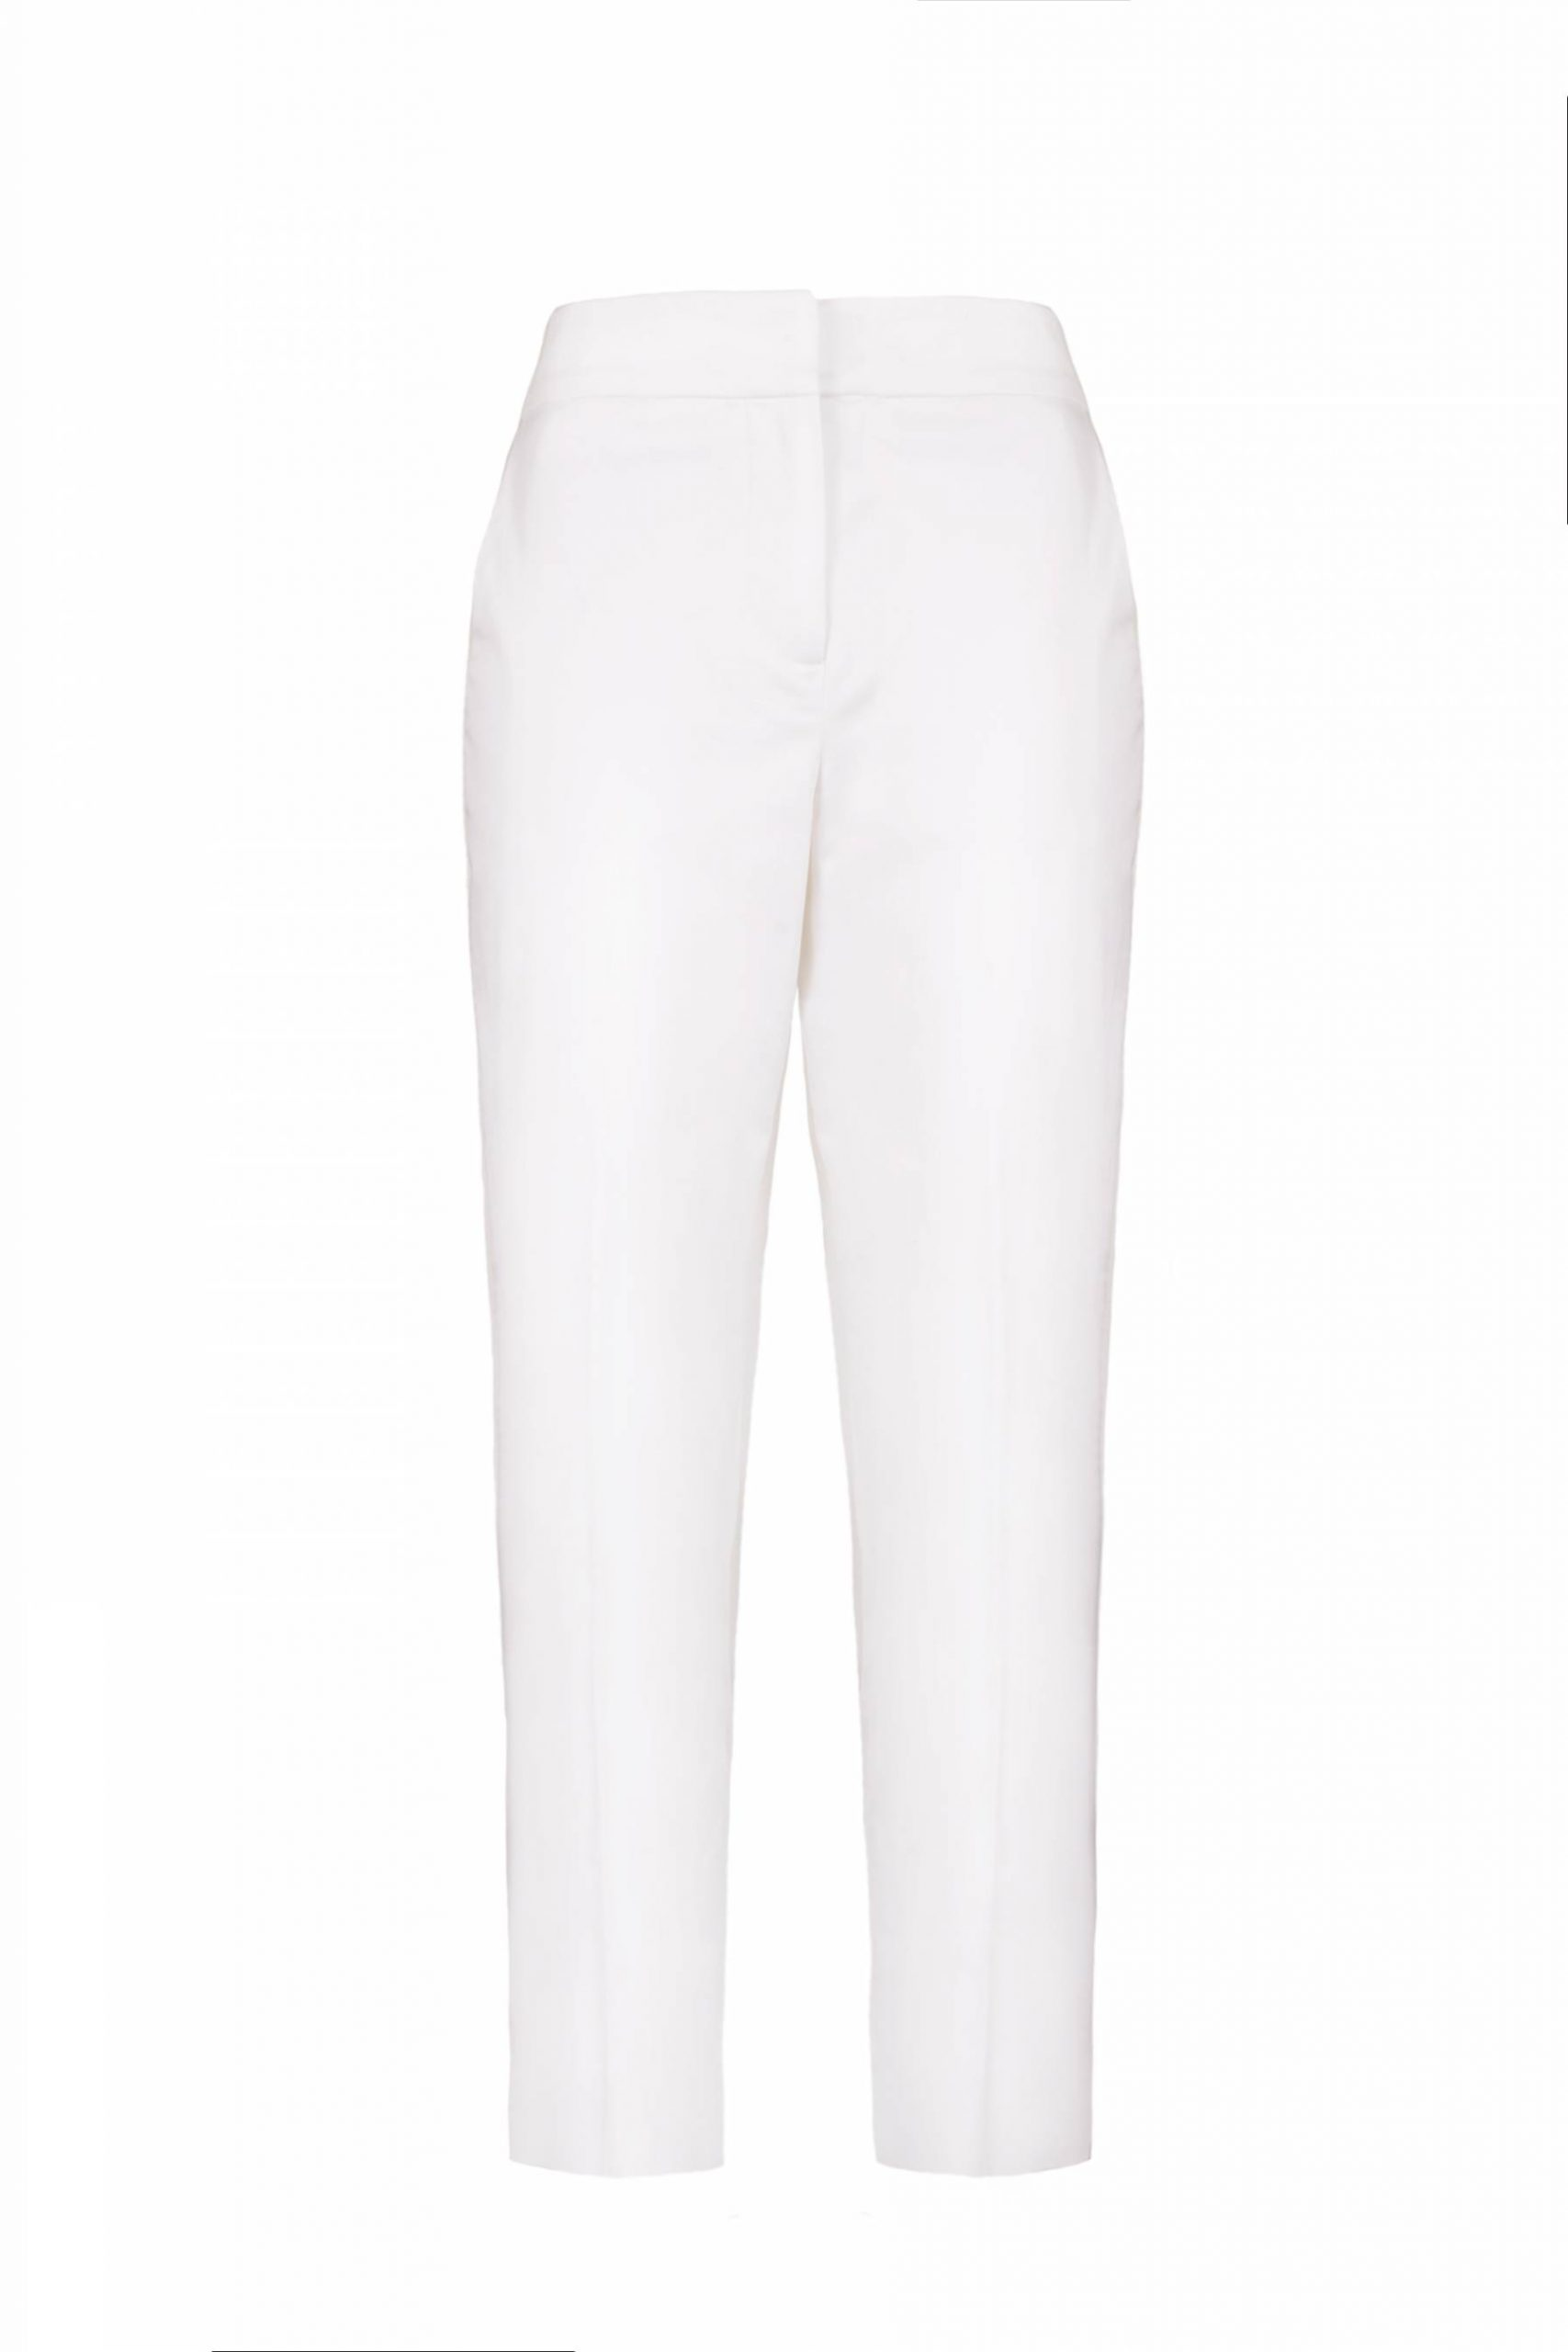 White cotton summer trousers.